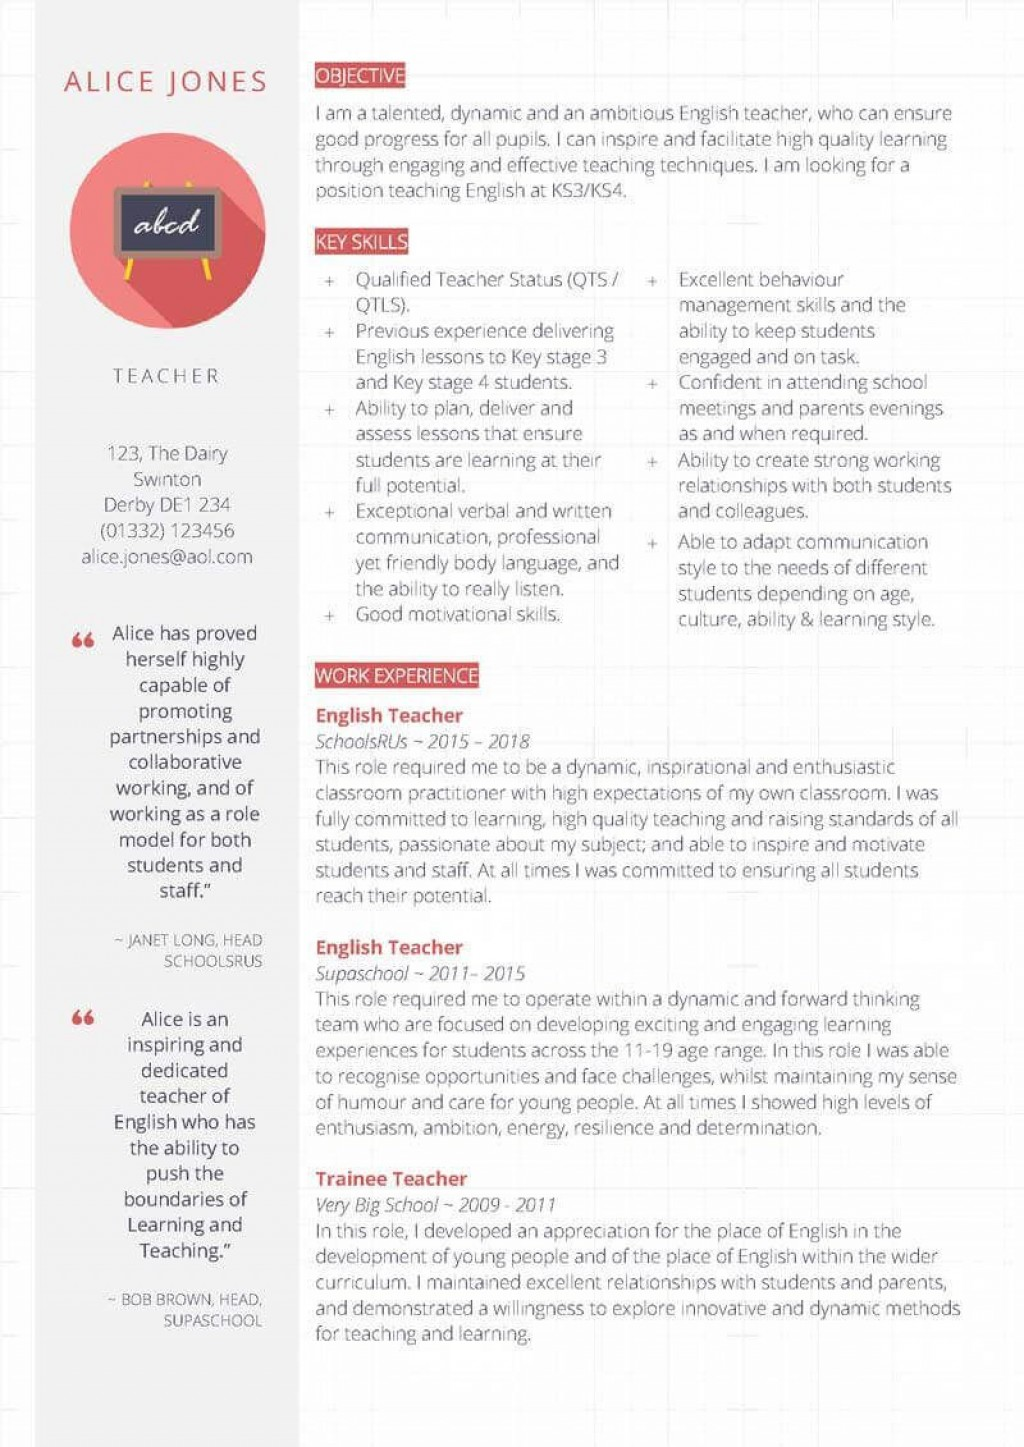 006 Amazing Teacher Resume Template Free Highest Quality  Cv Word Download Editable Format DocLarge